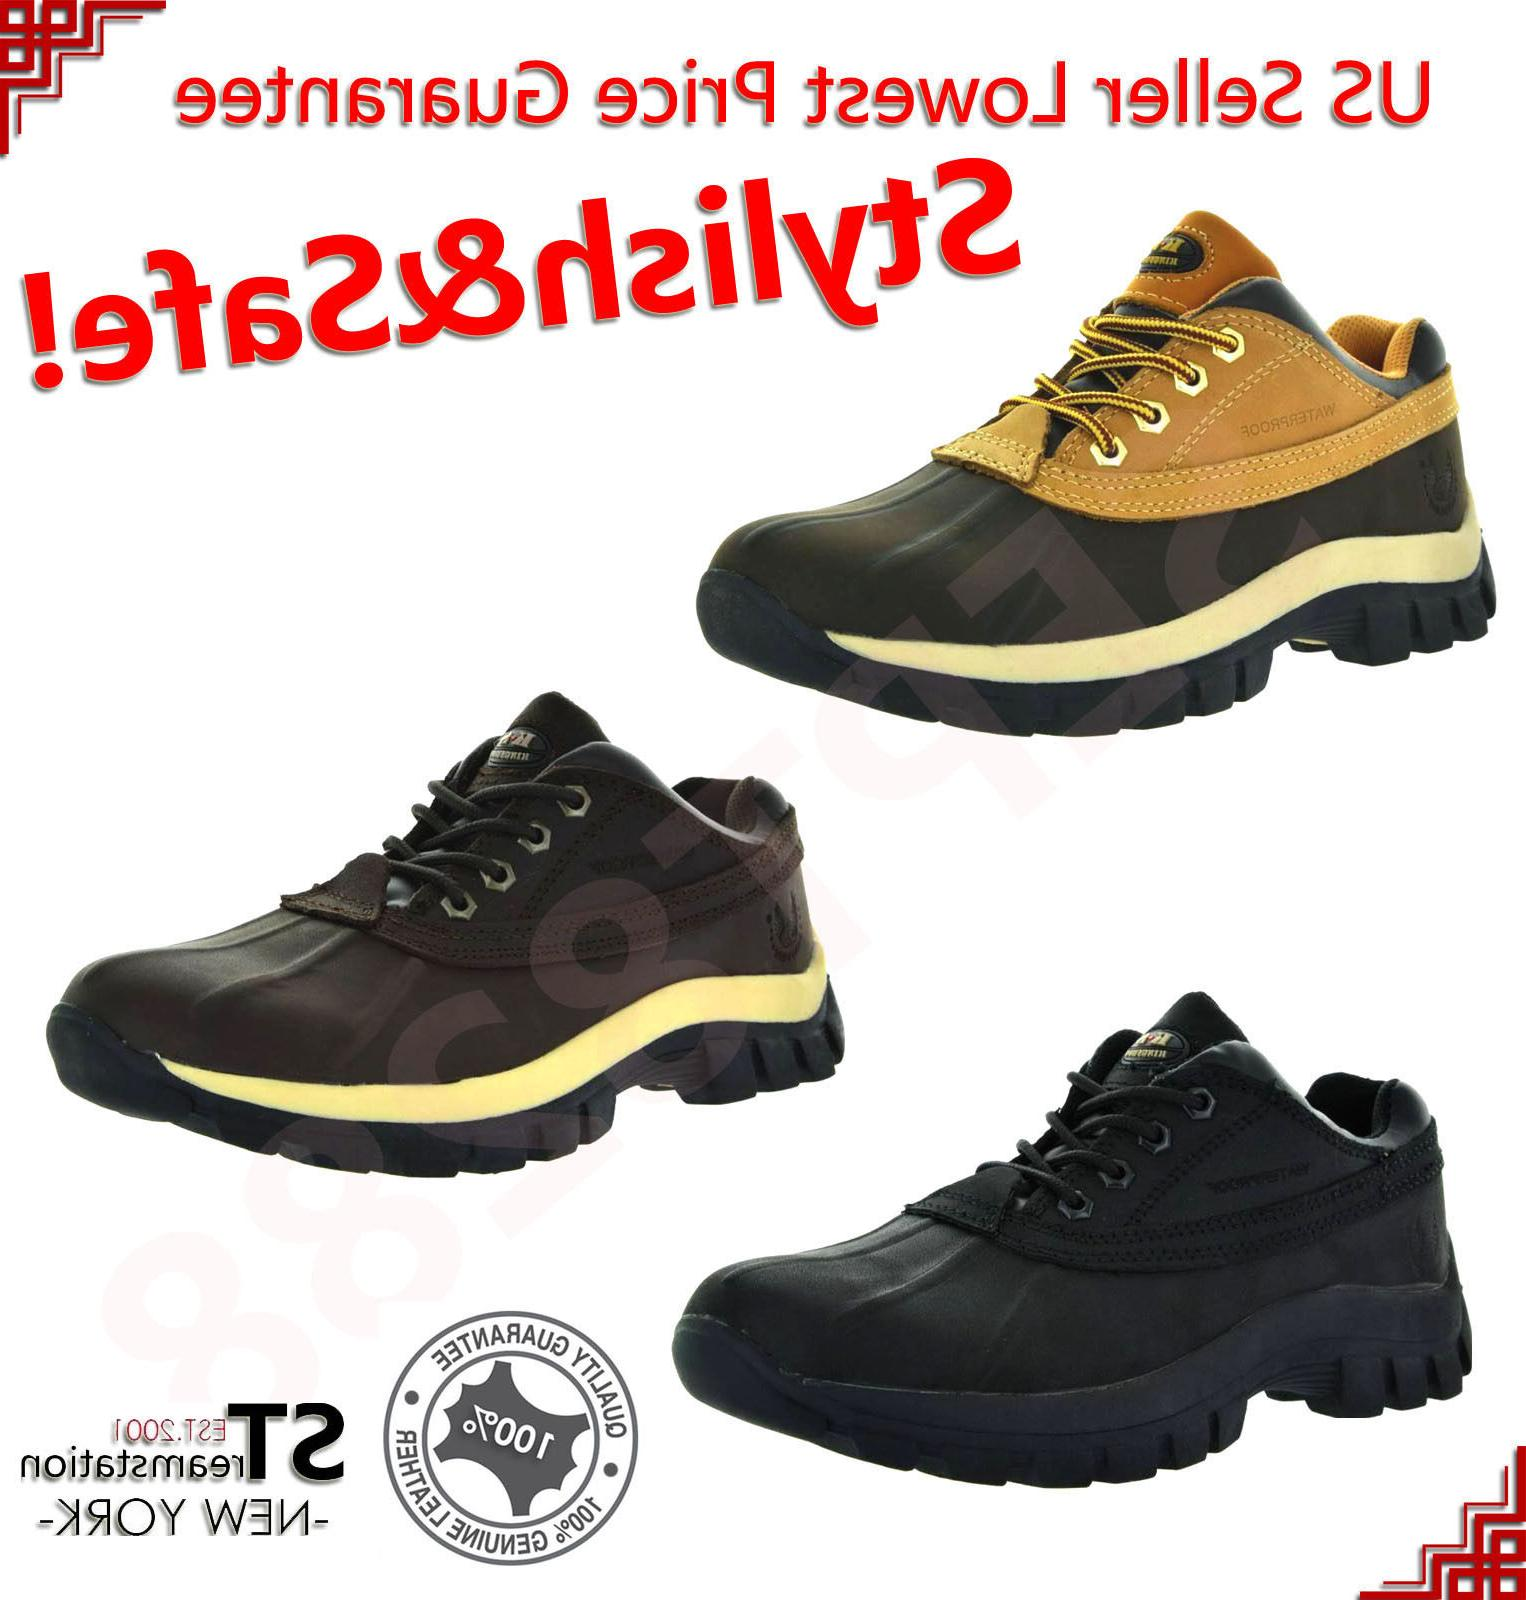 4 winter snow boots mens work boots